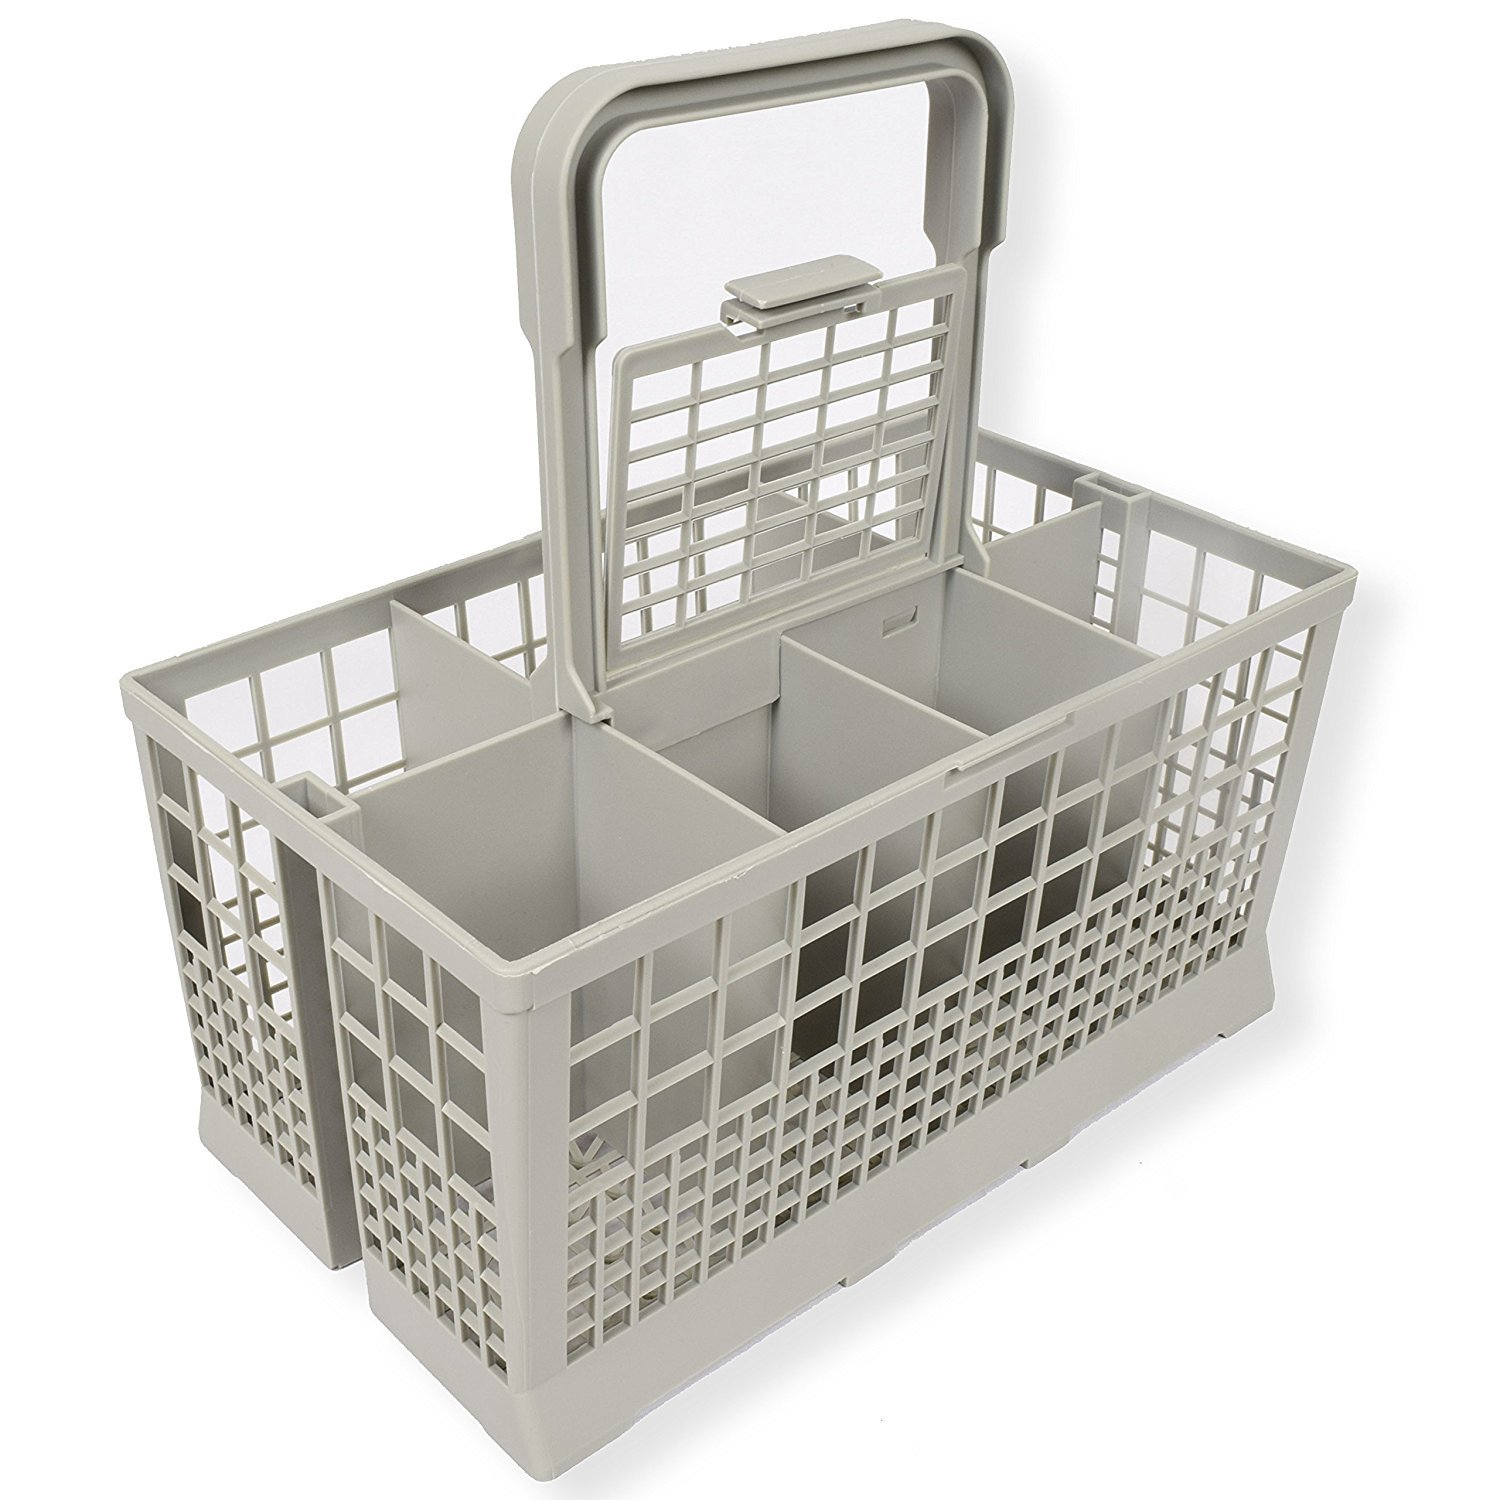 Universal Dishwasher Cutlery Basket fits Kenmore, Whirpool, Bosch, Maytag, KitchenAid, Maytag, Samsung, GE and More